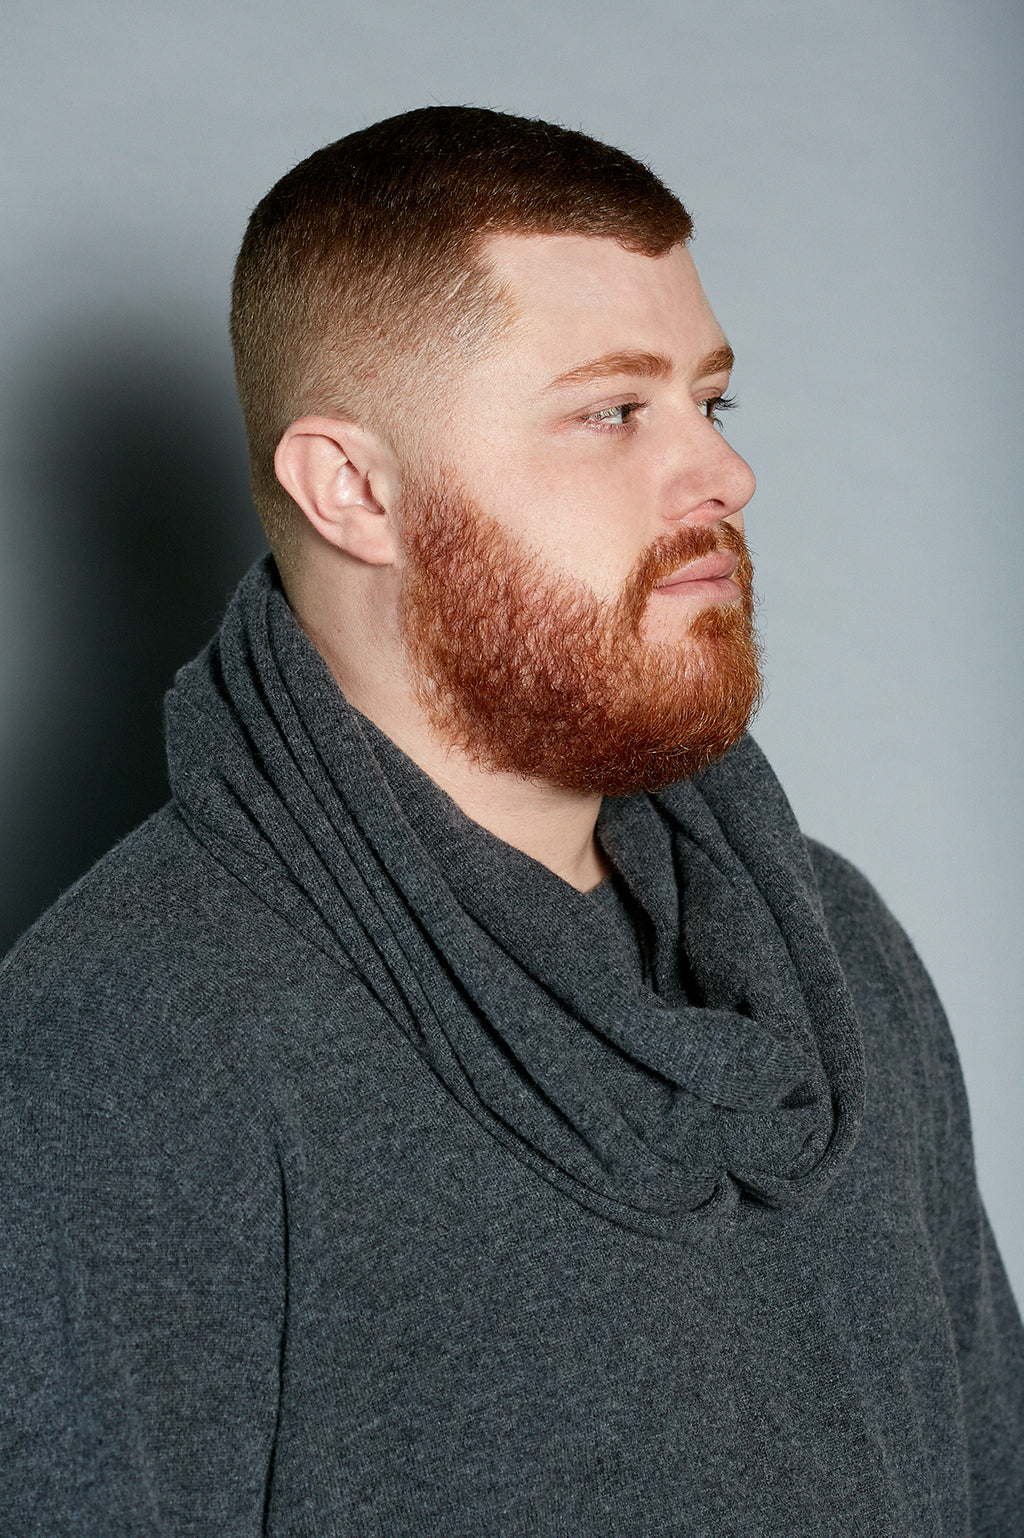 Charcoal Cashmere Infinity Scarf - Gray Finn  Big and Tall Mens Luxury Clothing